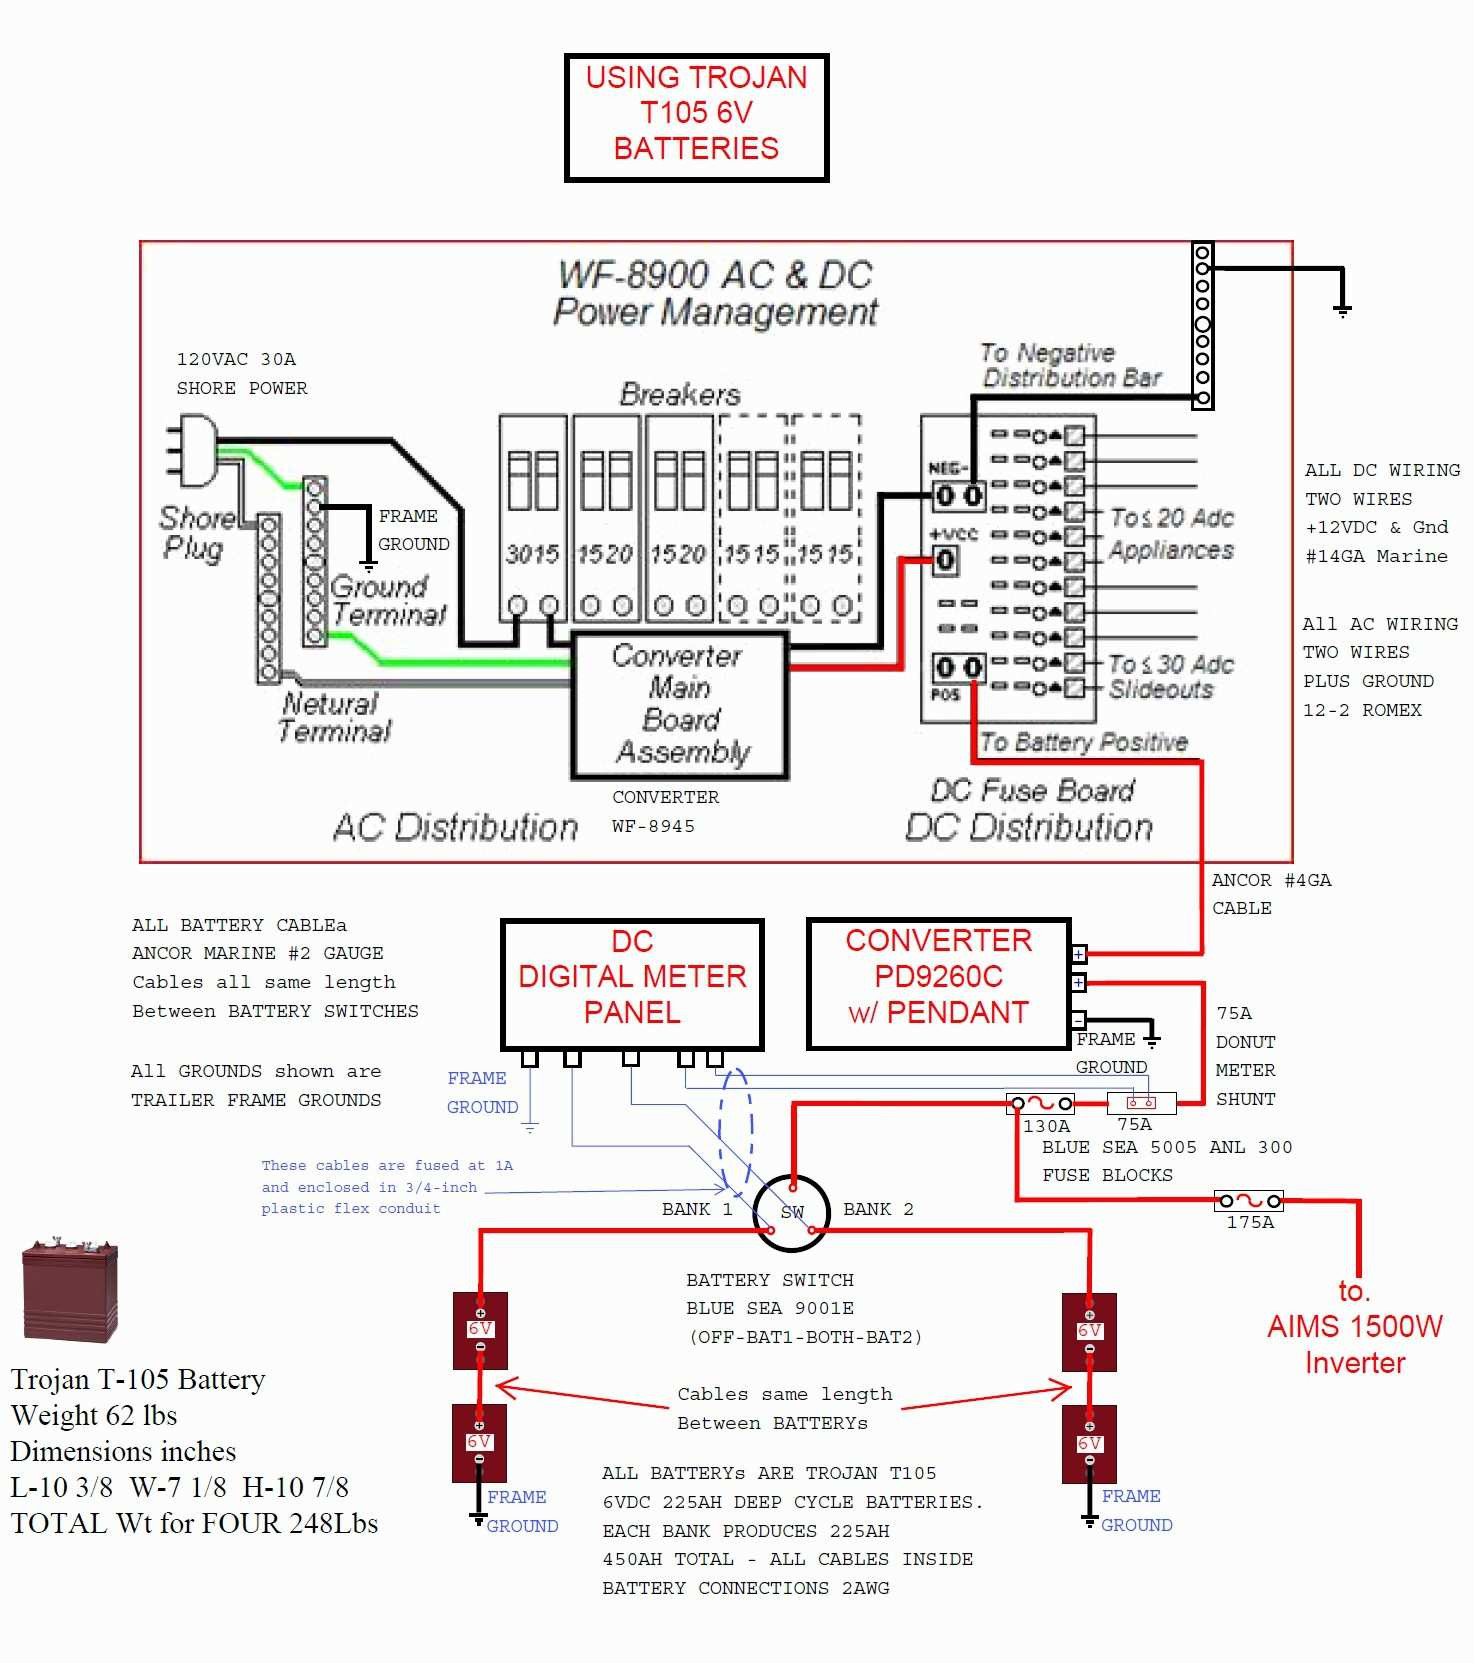 keystone rv wiring diagram Download-Wiring Diagram Keystone Cougar Fresh Rv Cable And Satellite Wiring Diagram Unique Magnificent Keystone Rv 4-s